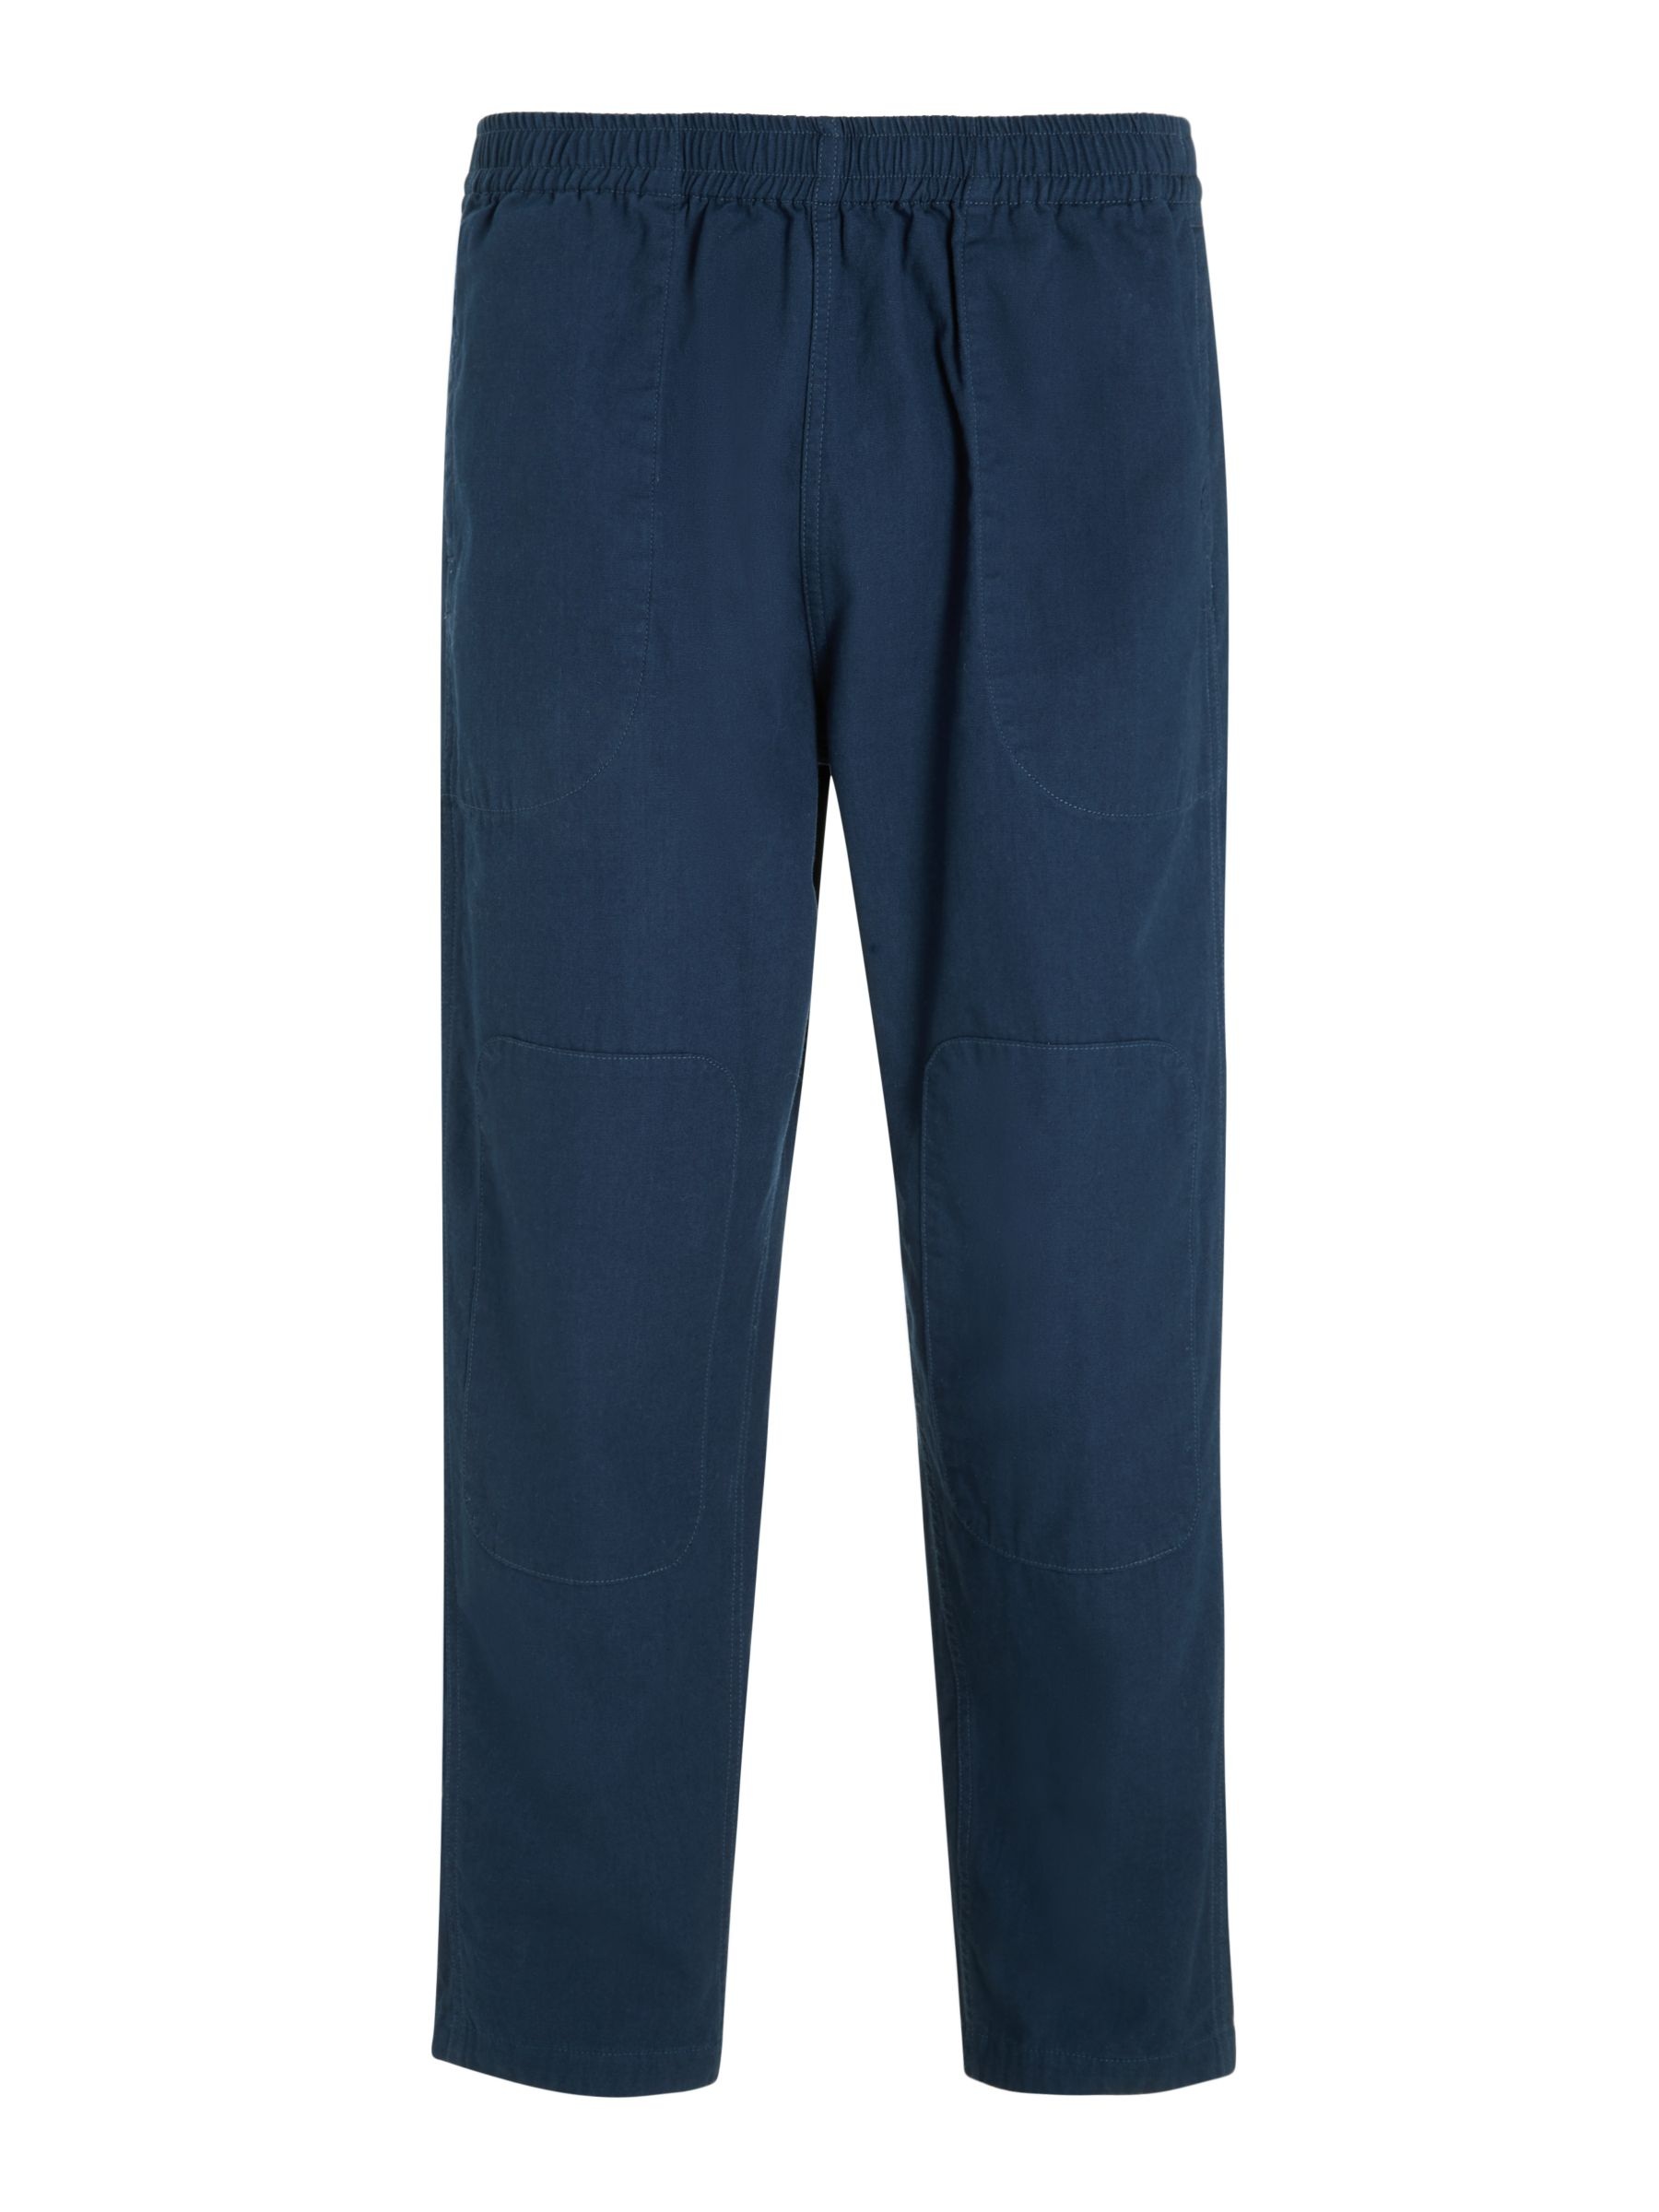 Buy Garbstore Japanese Cotton Dyed Home Party Pant Chinos, Navy, S Online at johnlewis.com